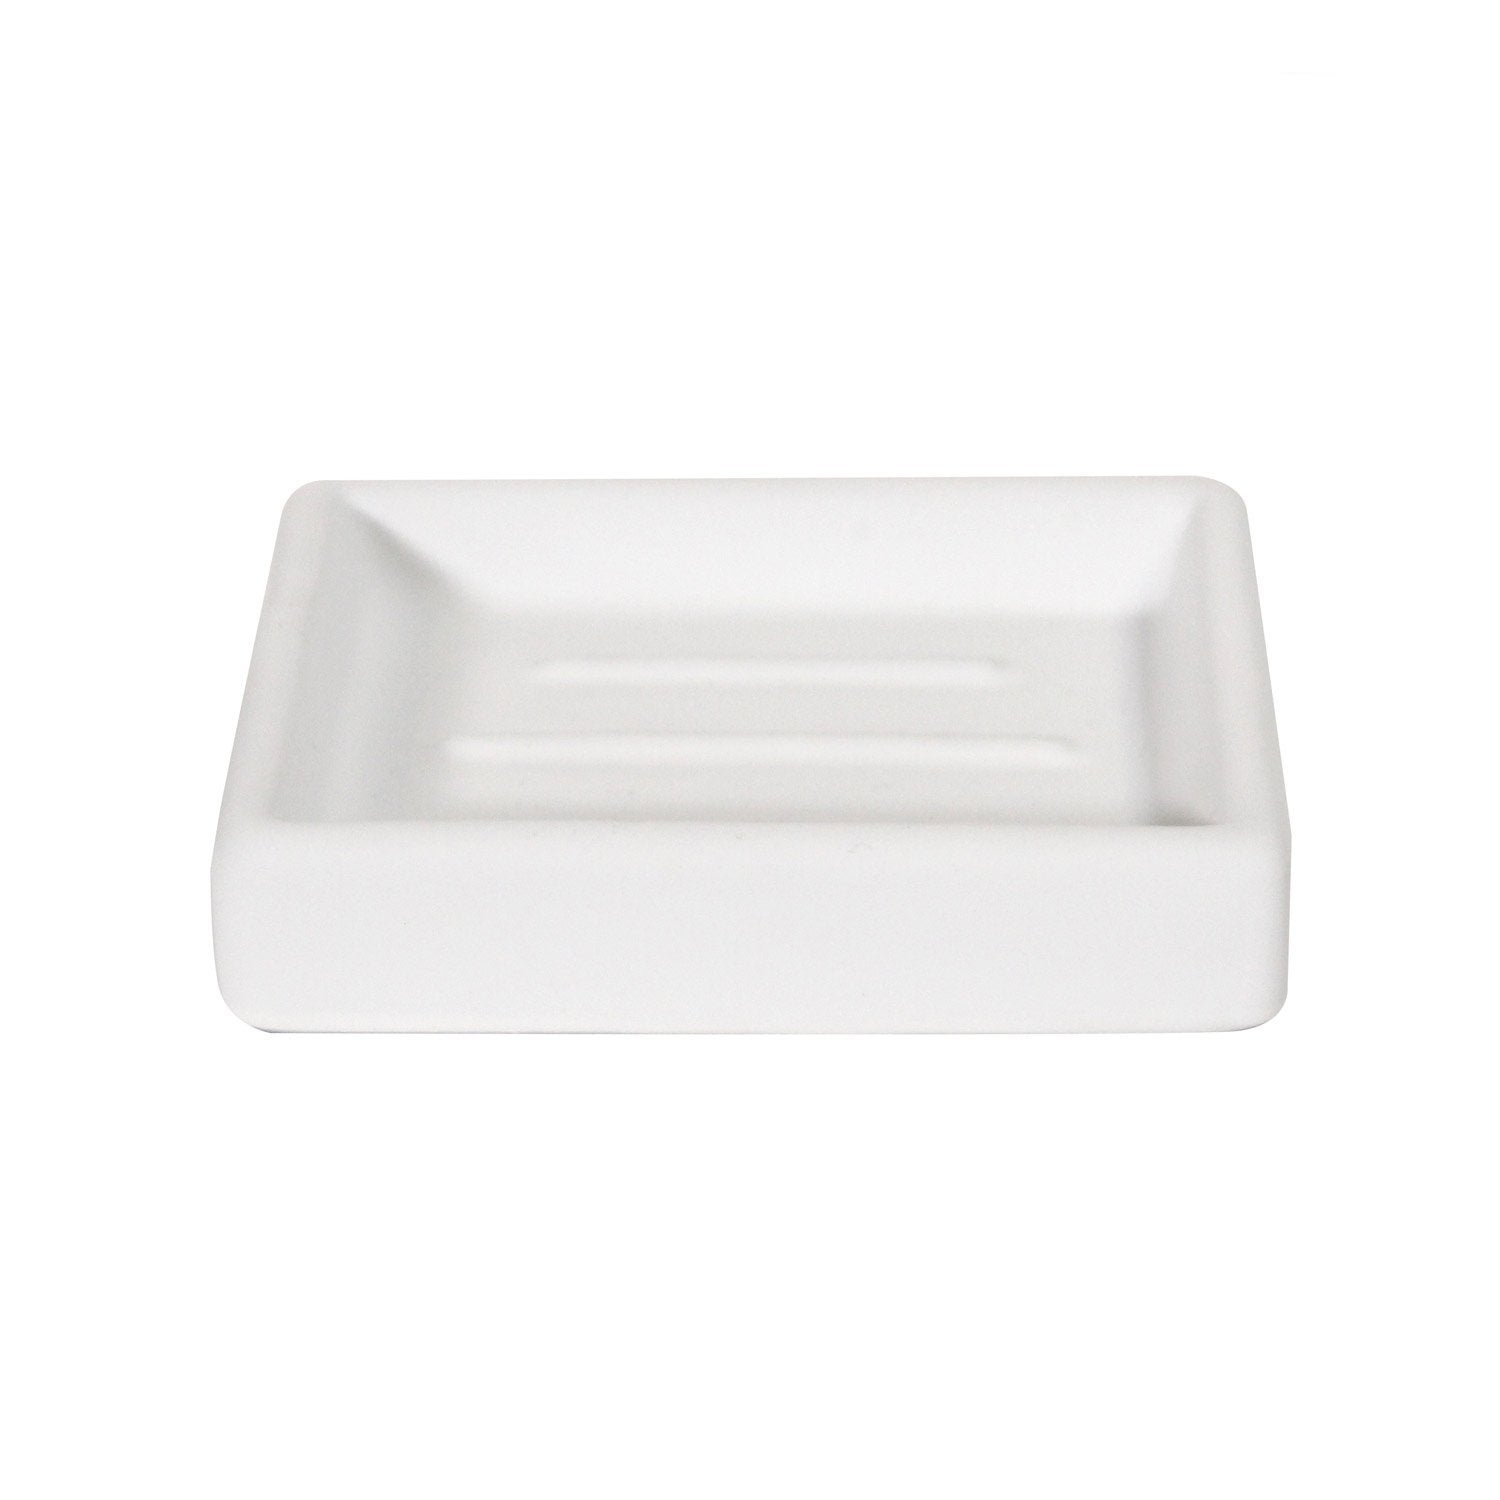 Porte-savon céramique Carry, white n°0